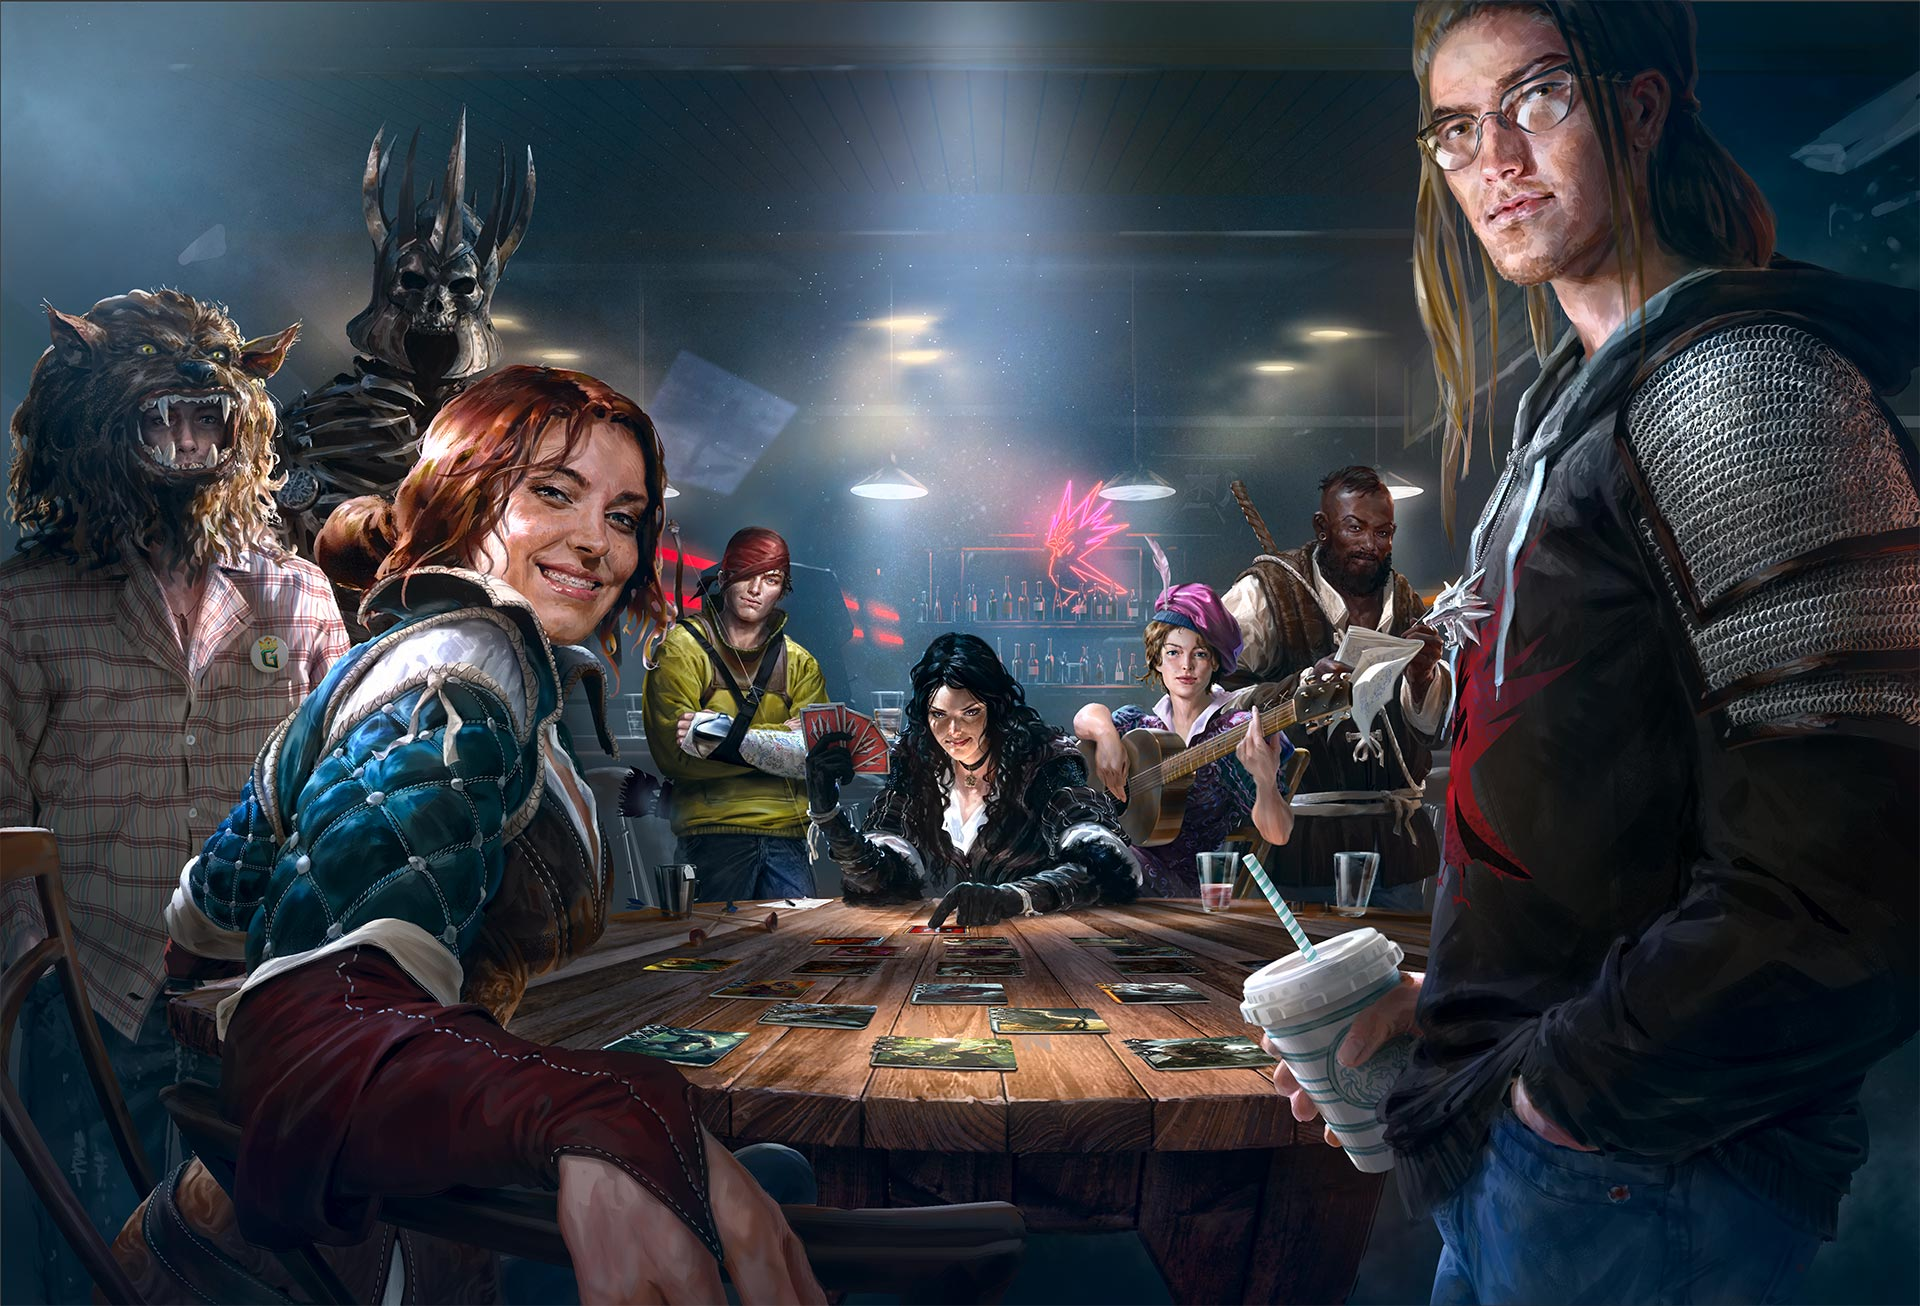 Gwent is a game born of one wild weekend, busy volunteers and hundreds of emails